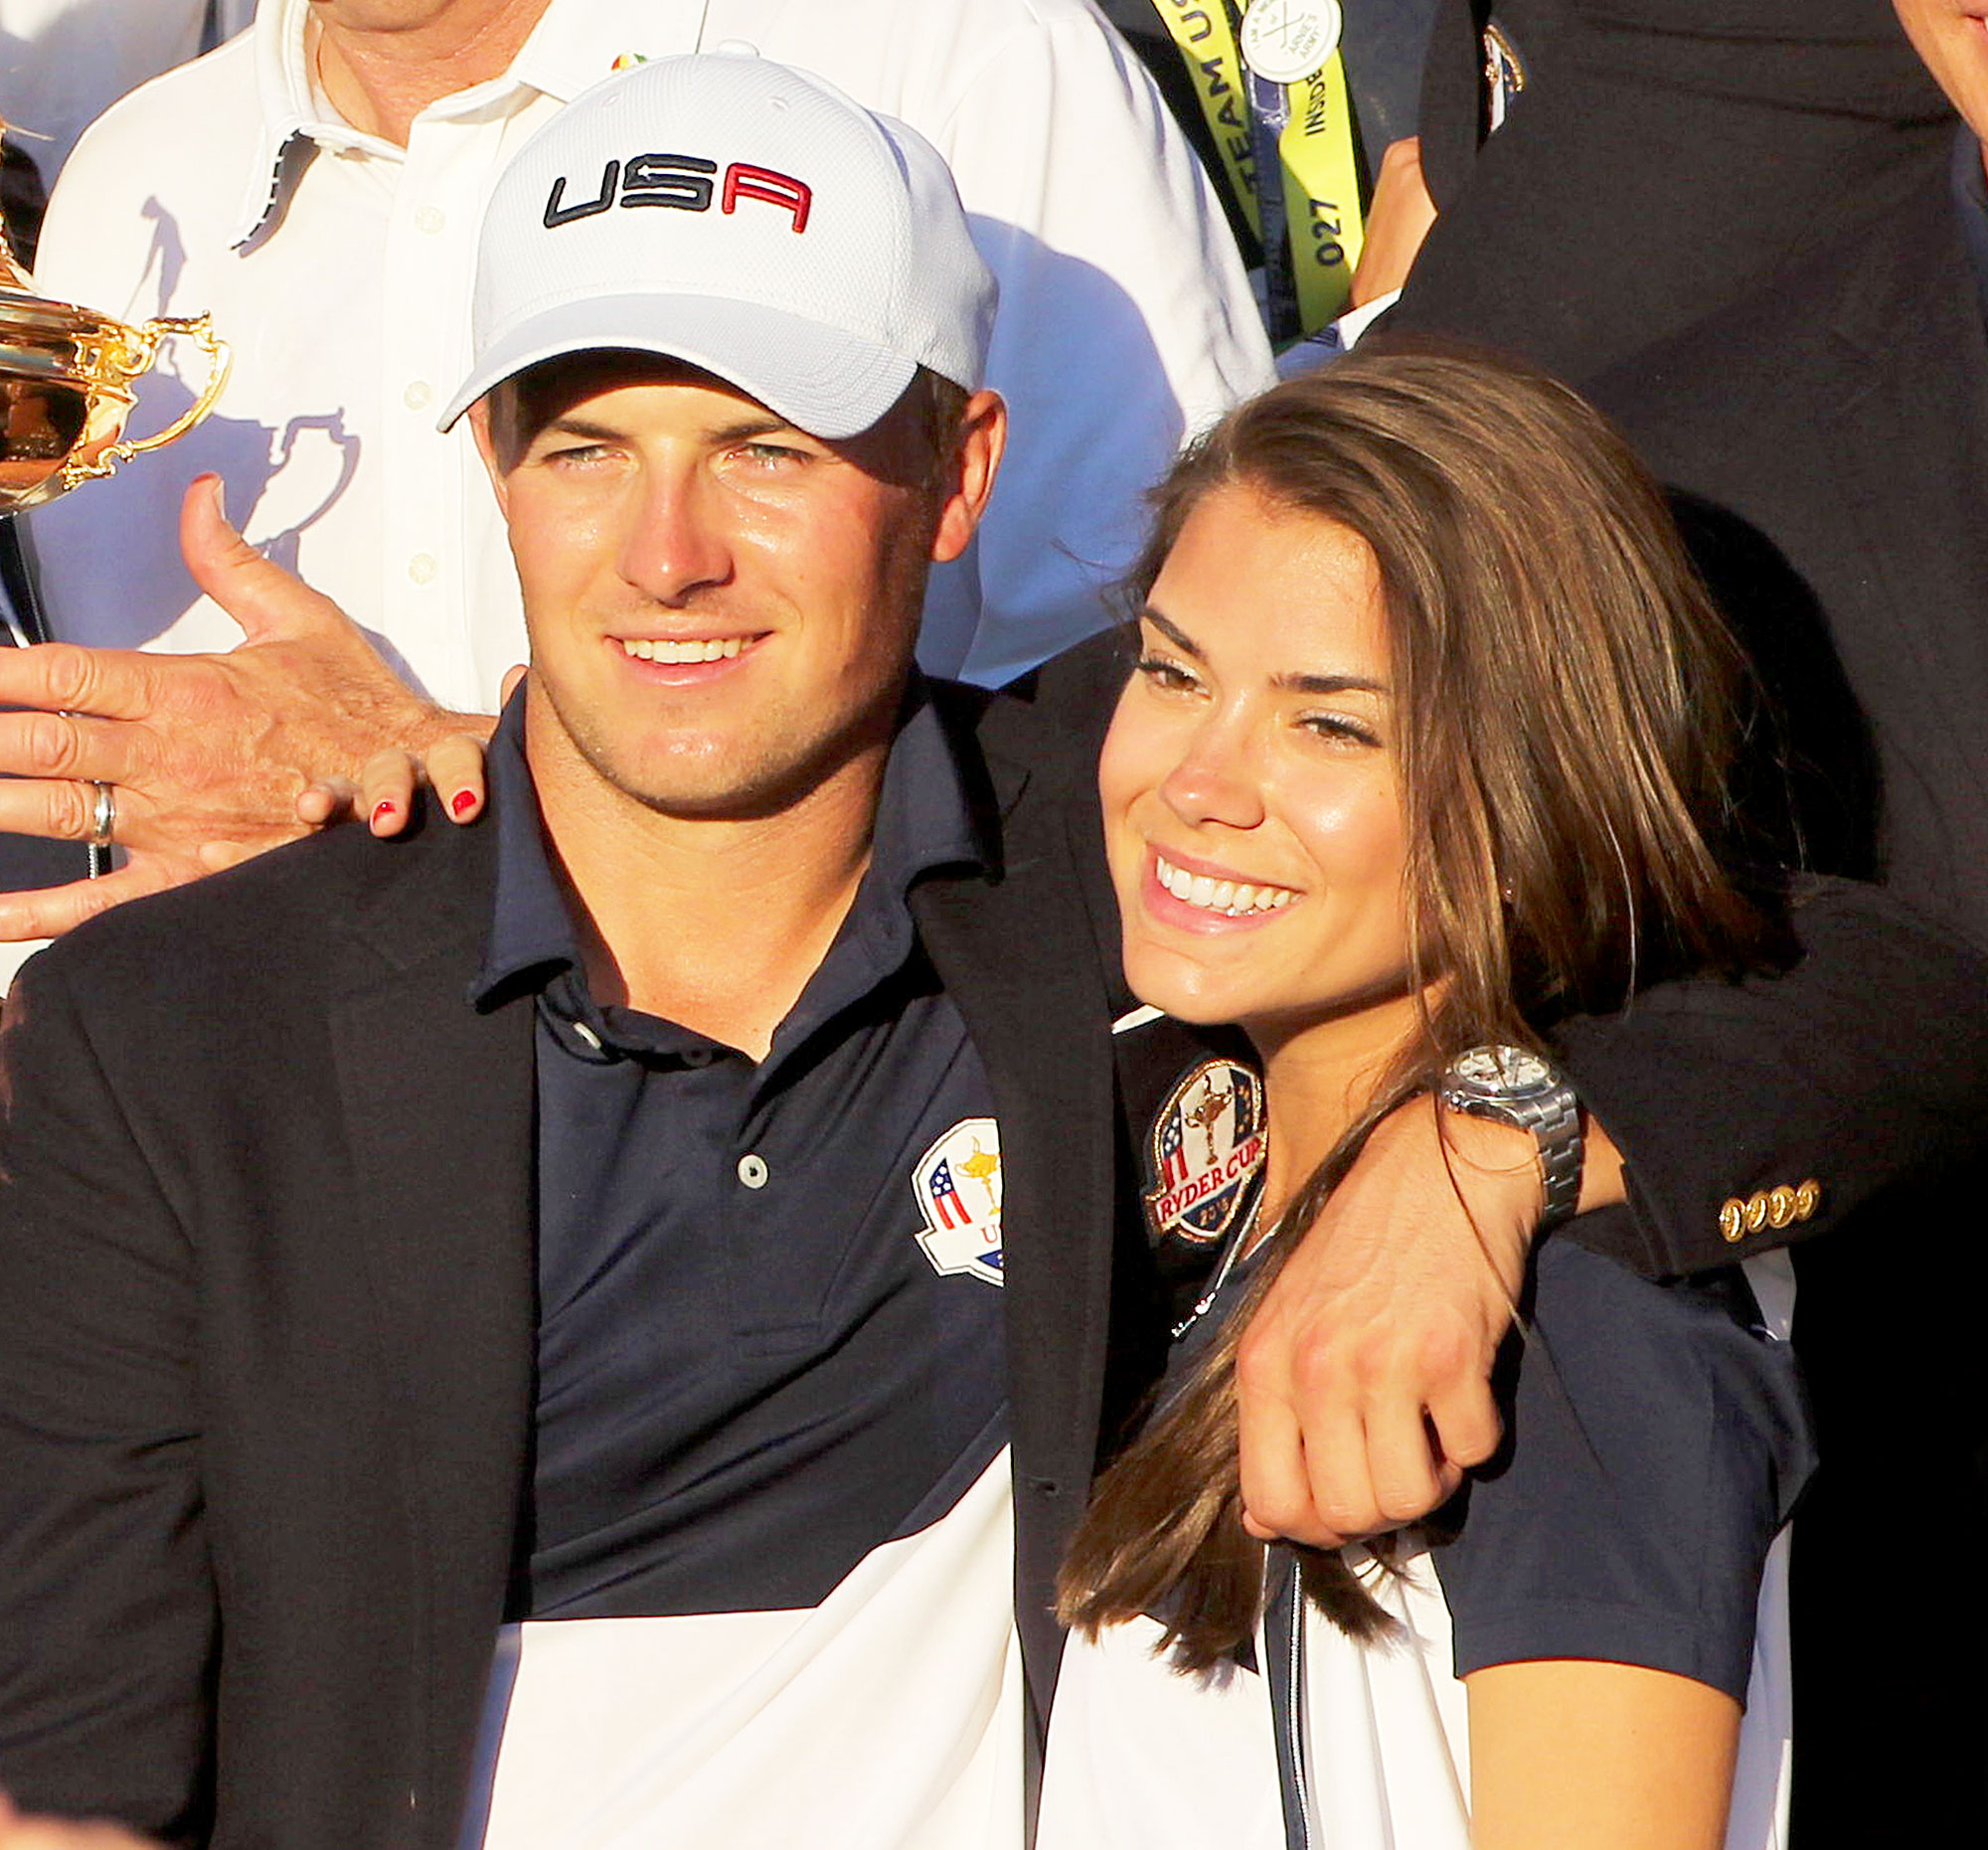 Jordan Spieth, Annie Verret together